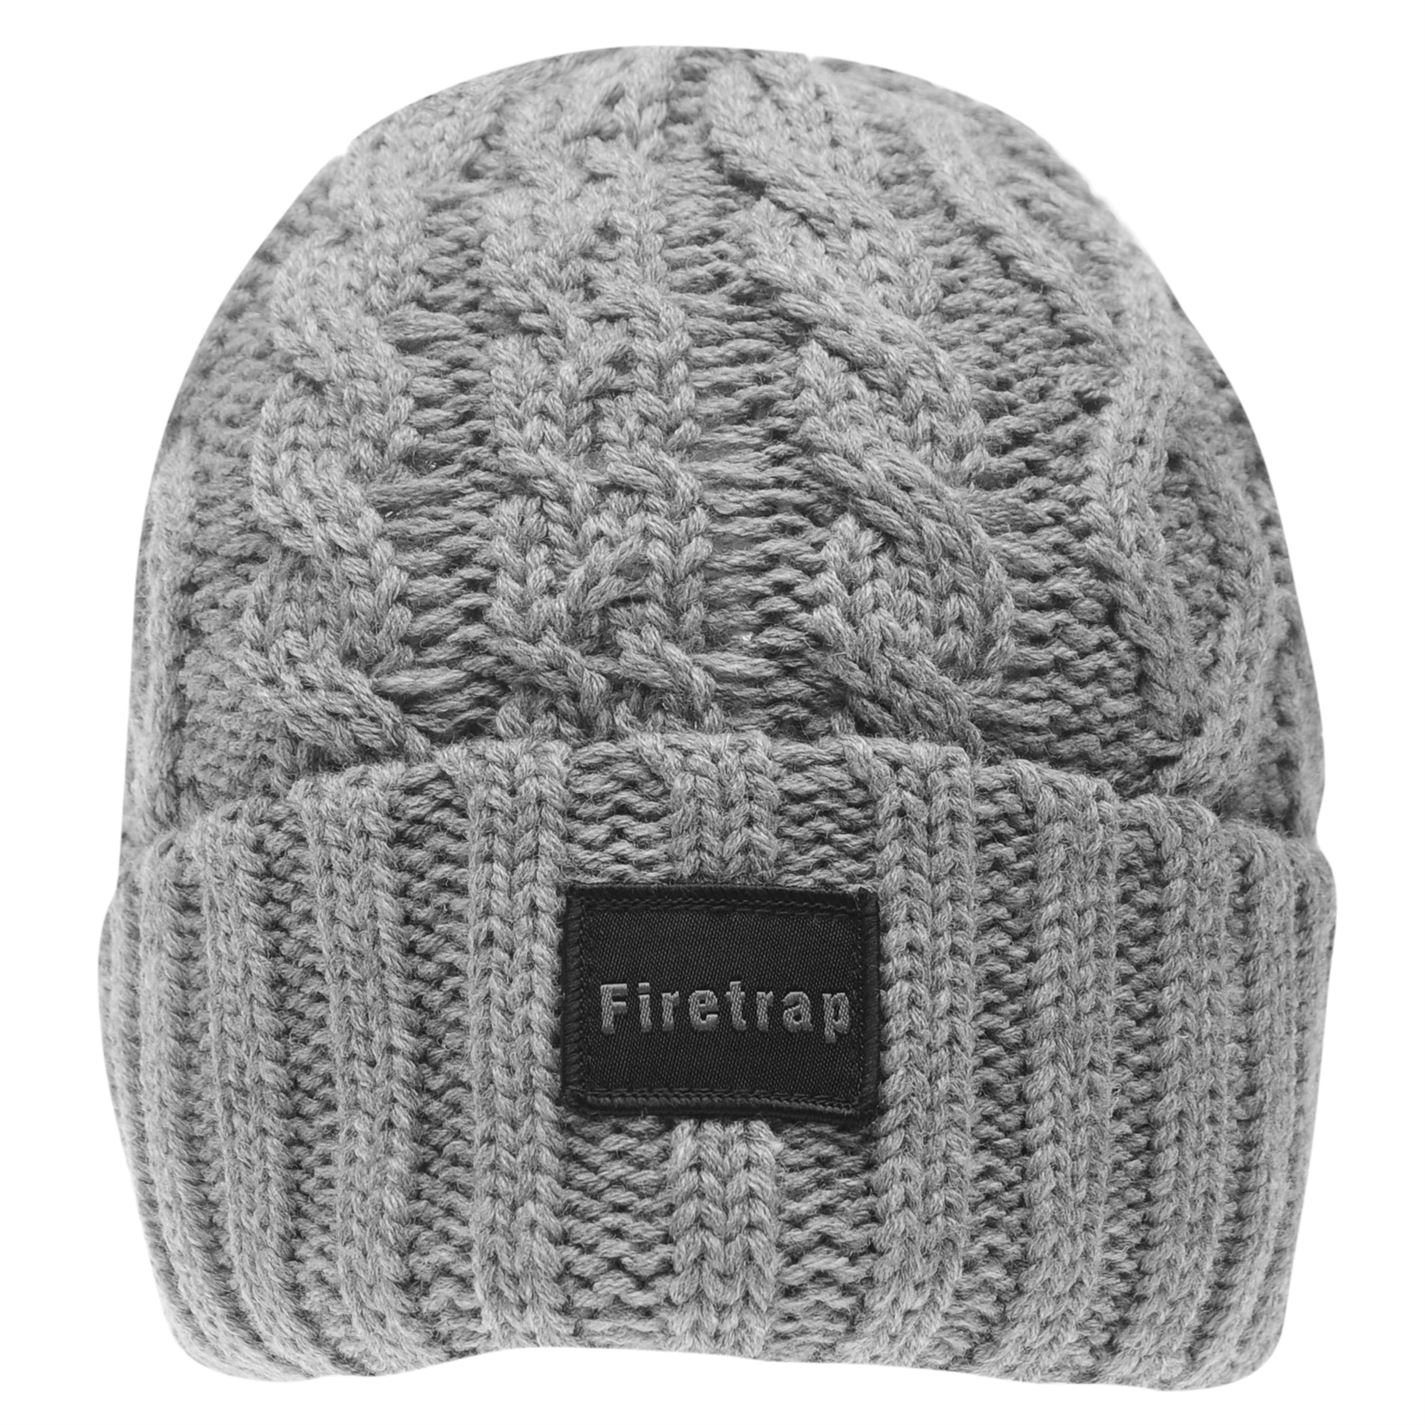 Mens-Firetrap-Cable-Beanie-Pattern-New thumbnail 15